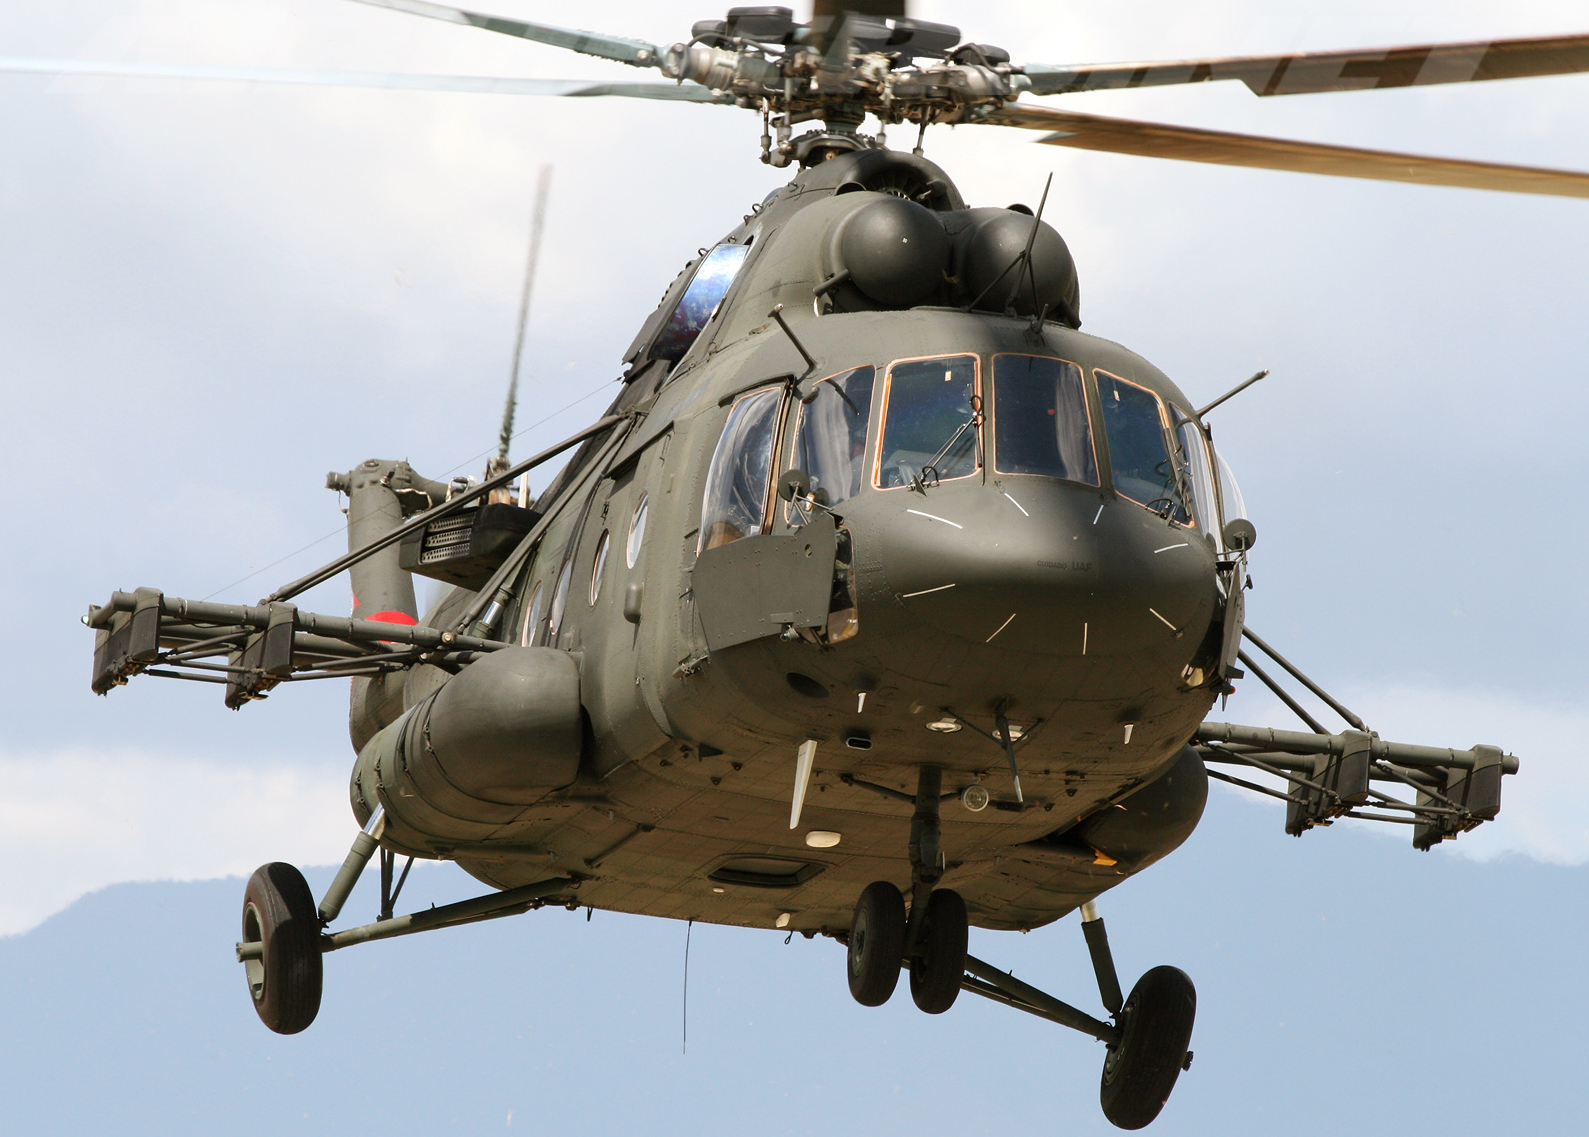 helicoptere russe MI-17 V-5